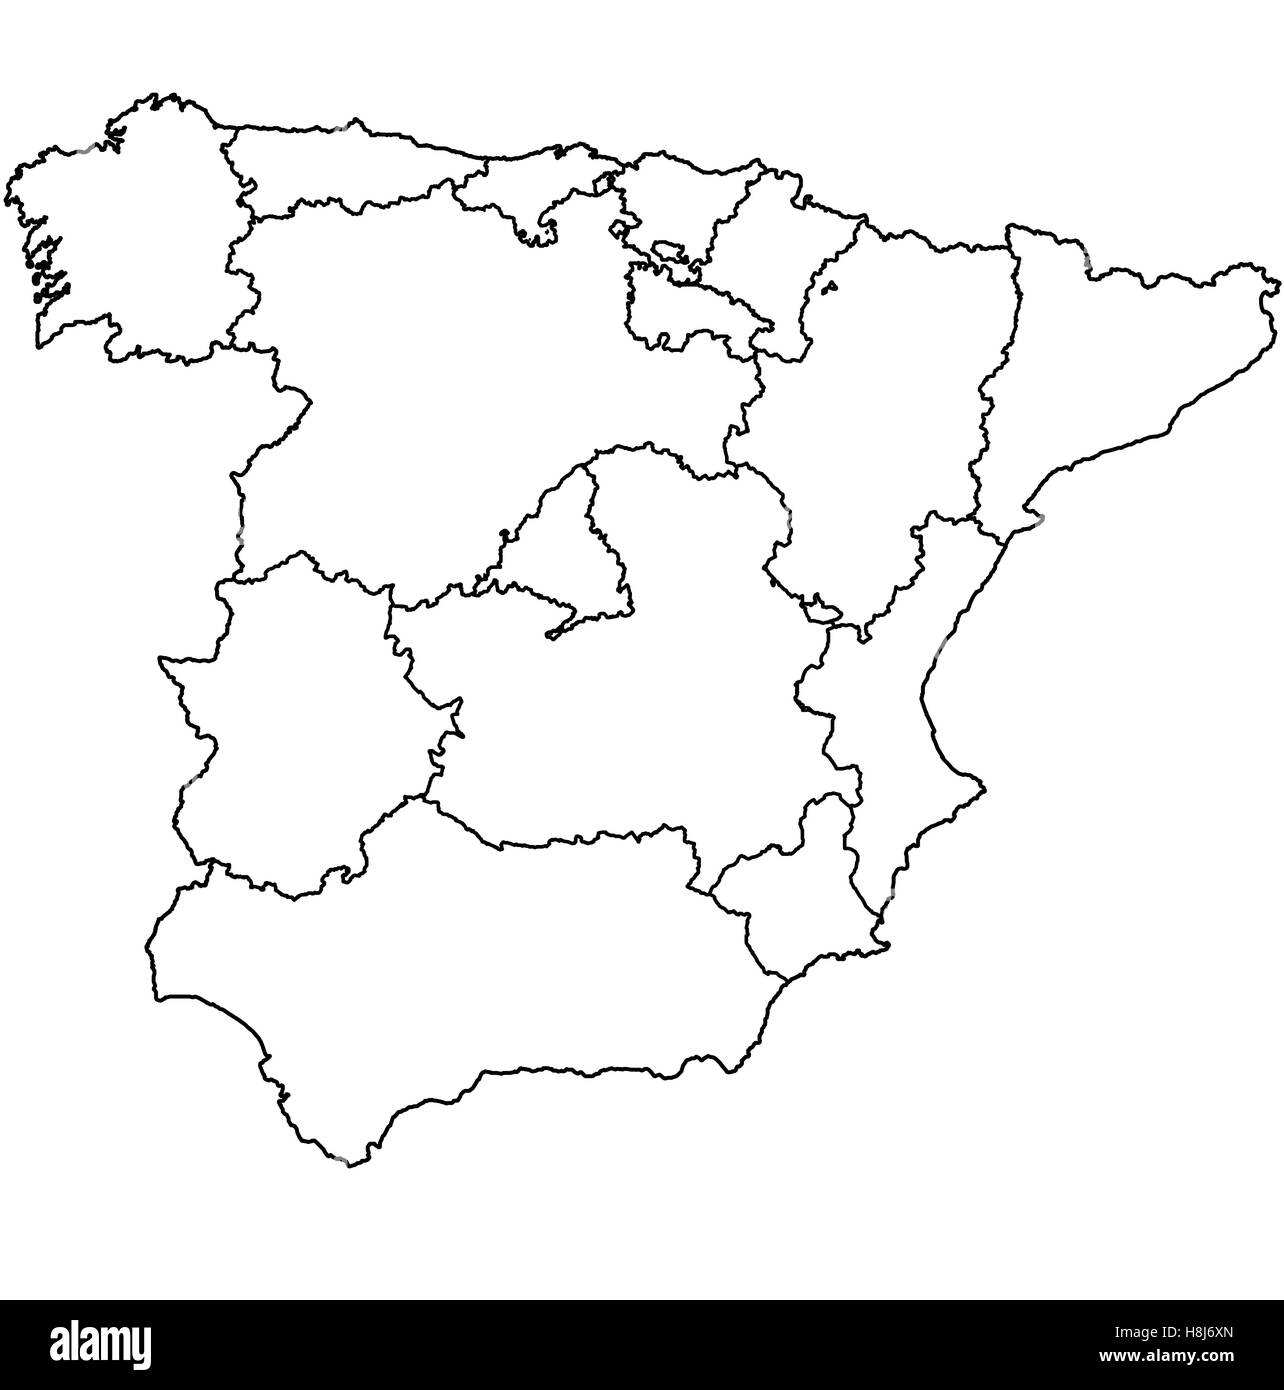 Madrid Map Black And White Stock Photos Amp Images